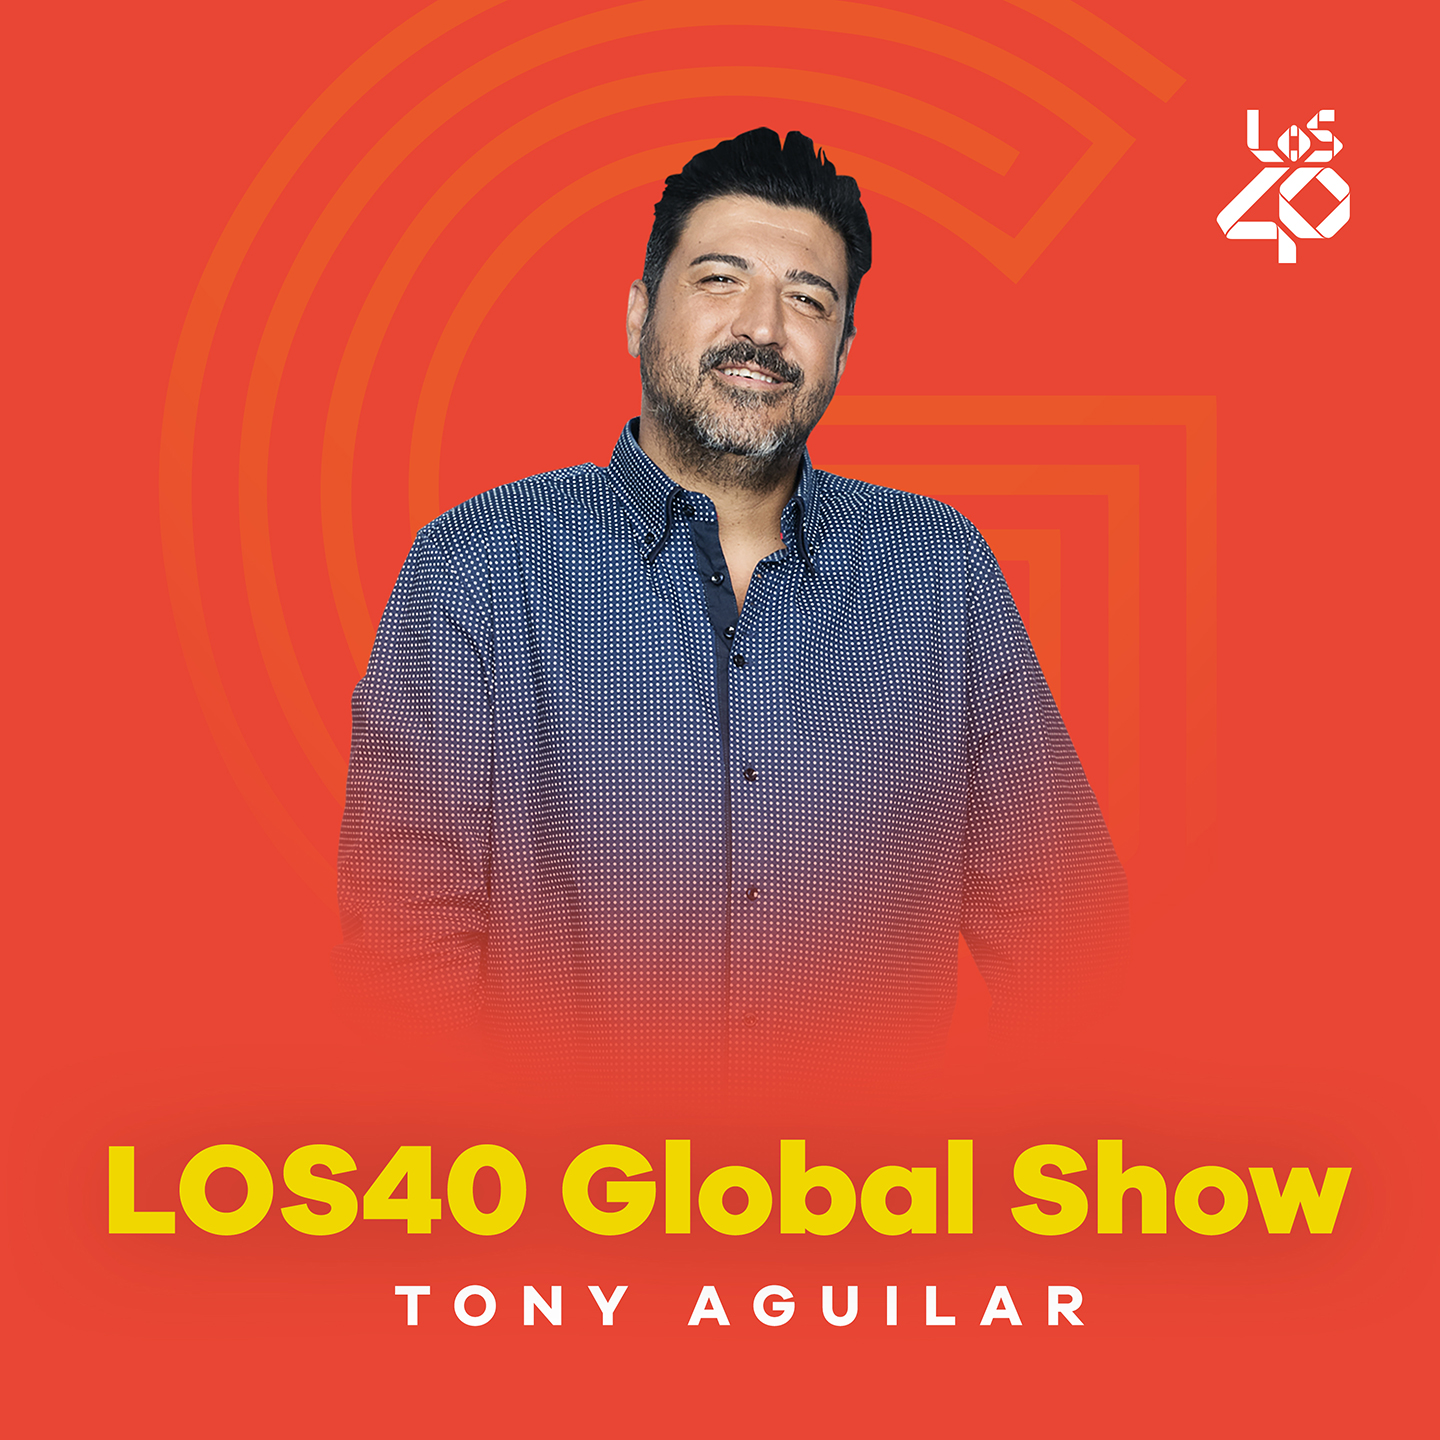 40 GLOBAL SHOW